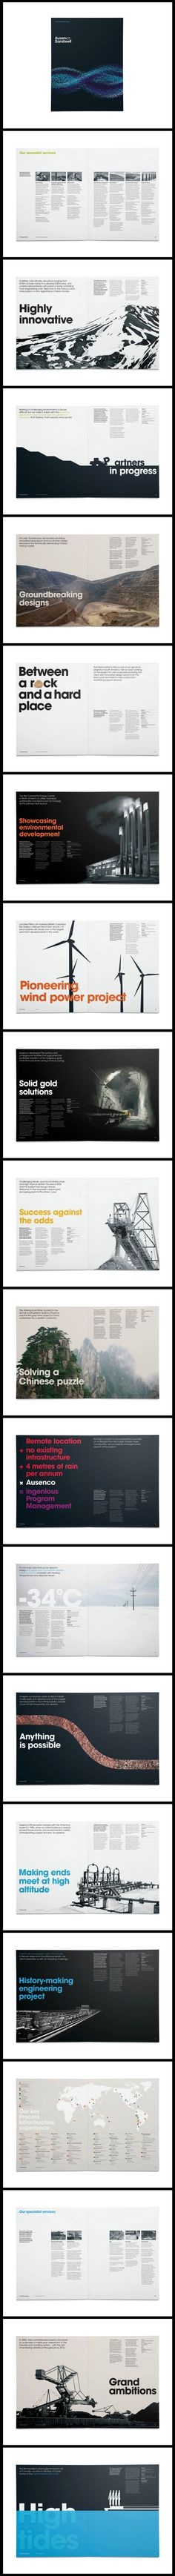 My kind of page layout: it lets the typography and photography speak for itself. There is absolutely zero clutter. // Ausenco by Chris Maclean